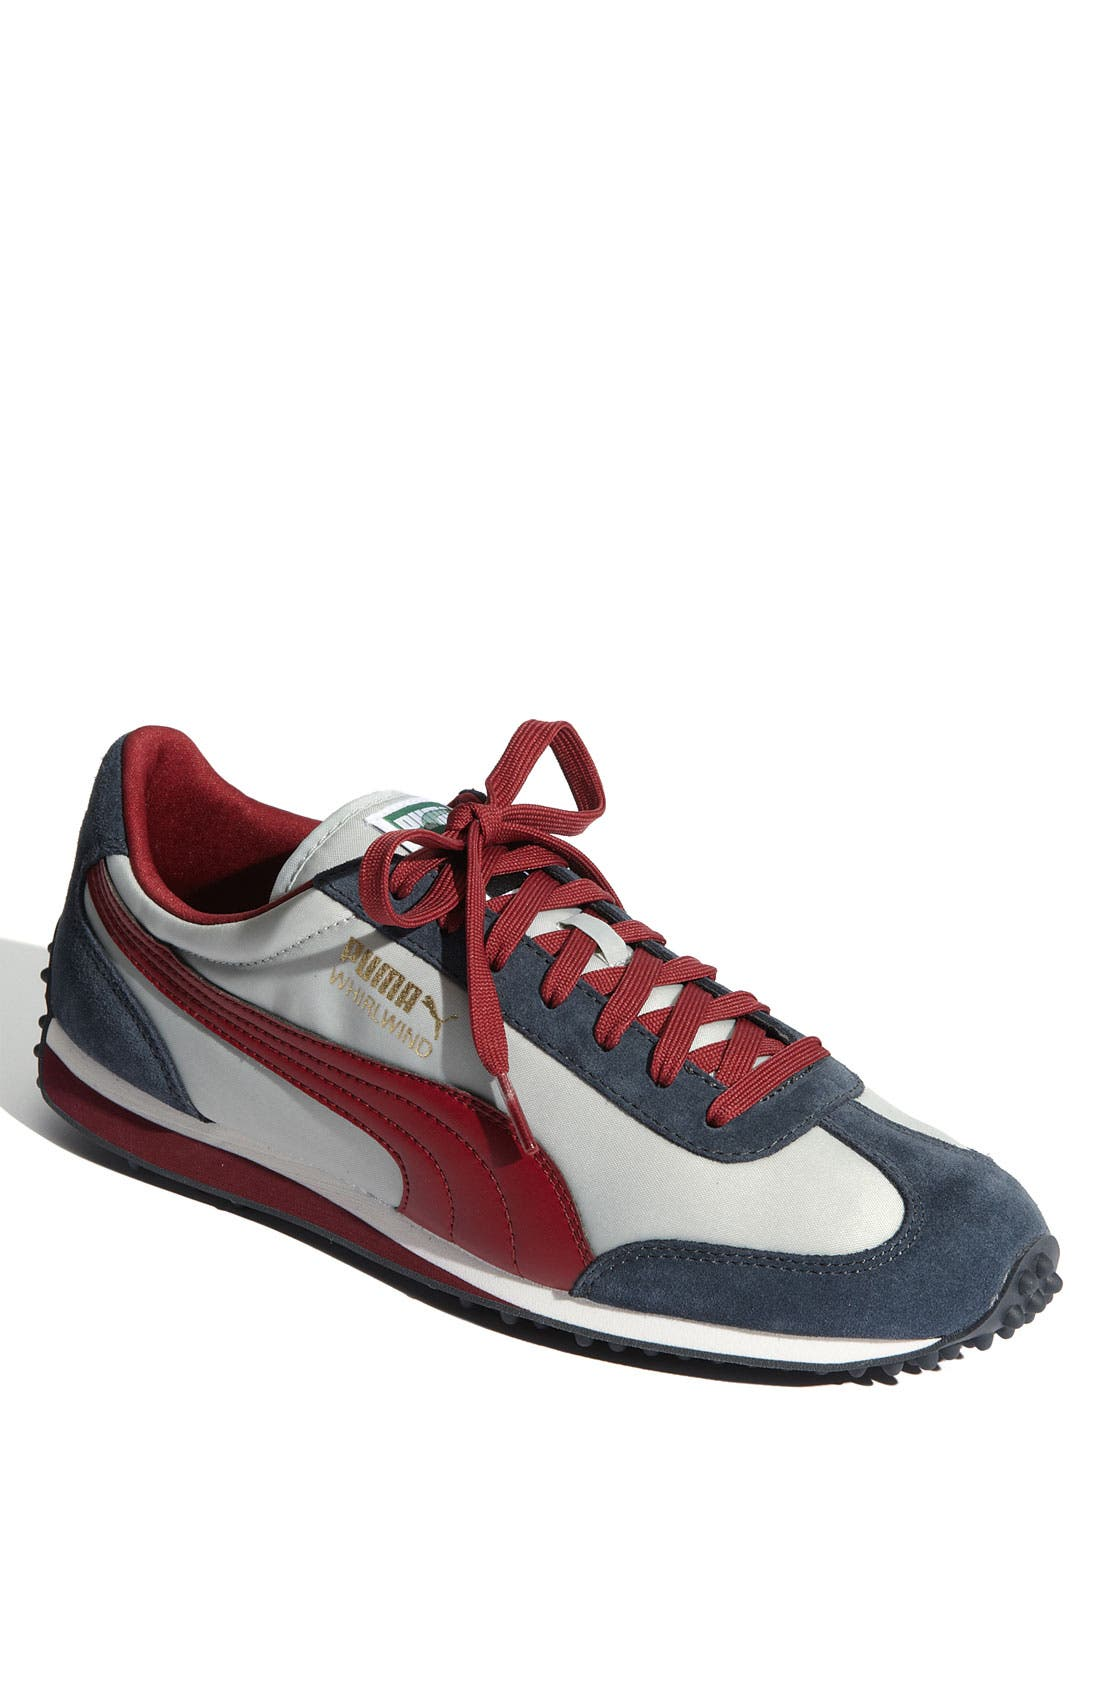 Alternate Image 1 Selected - PUMA 'Whirlwind Classic' Sneaker (Online Exclusive)